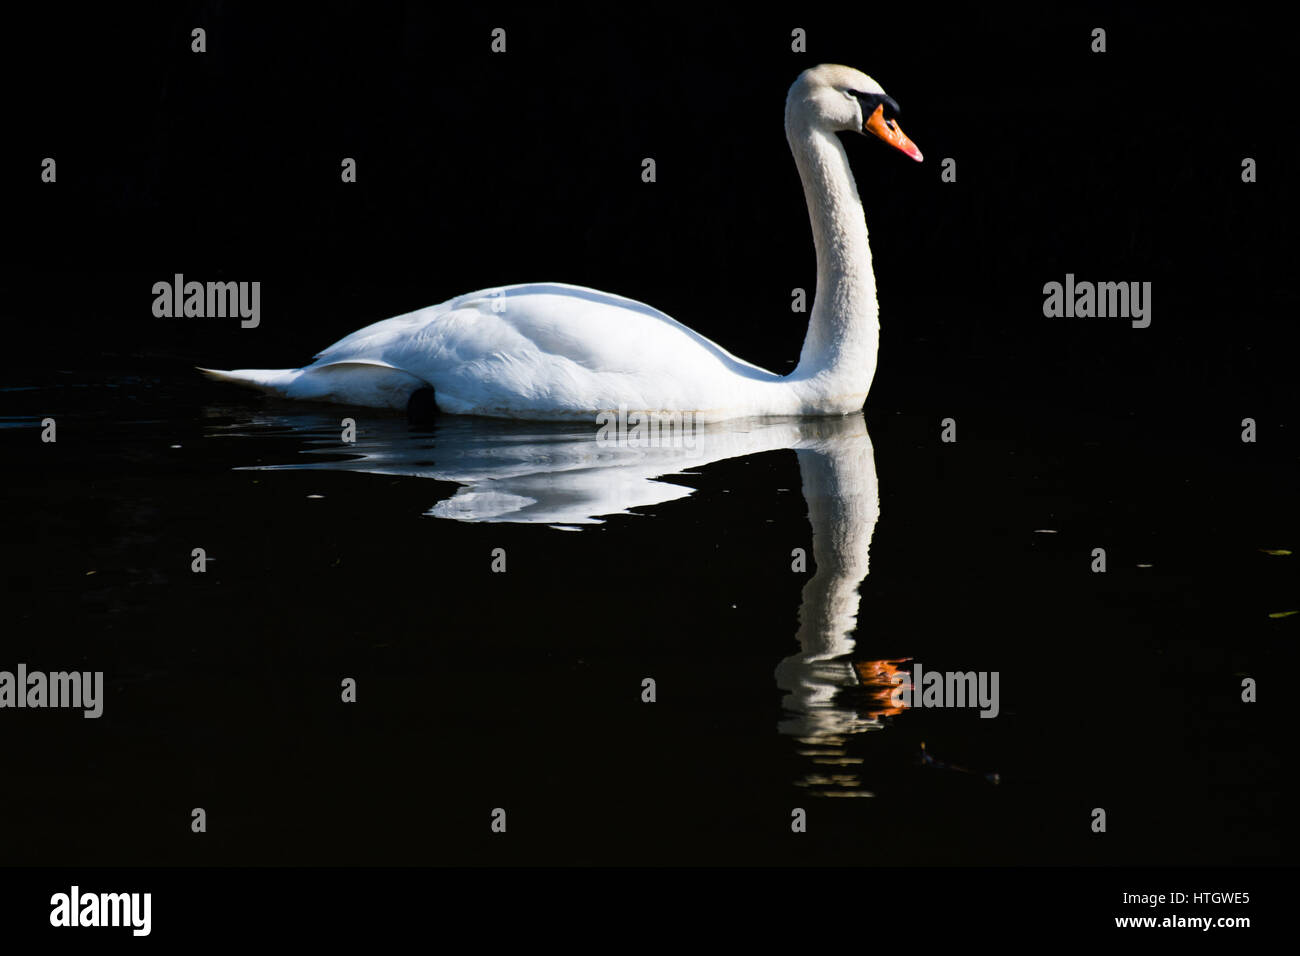 Aberystwyth Wales Uk, Wednesday 15 March 2017 UK Weather: A beautiful white swan paddles gracefully on the calm - Stock Image